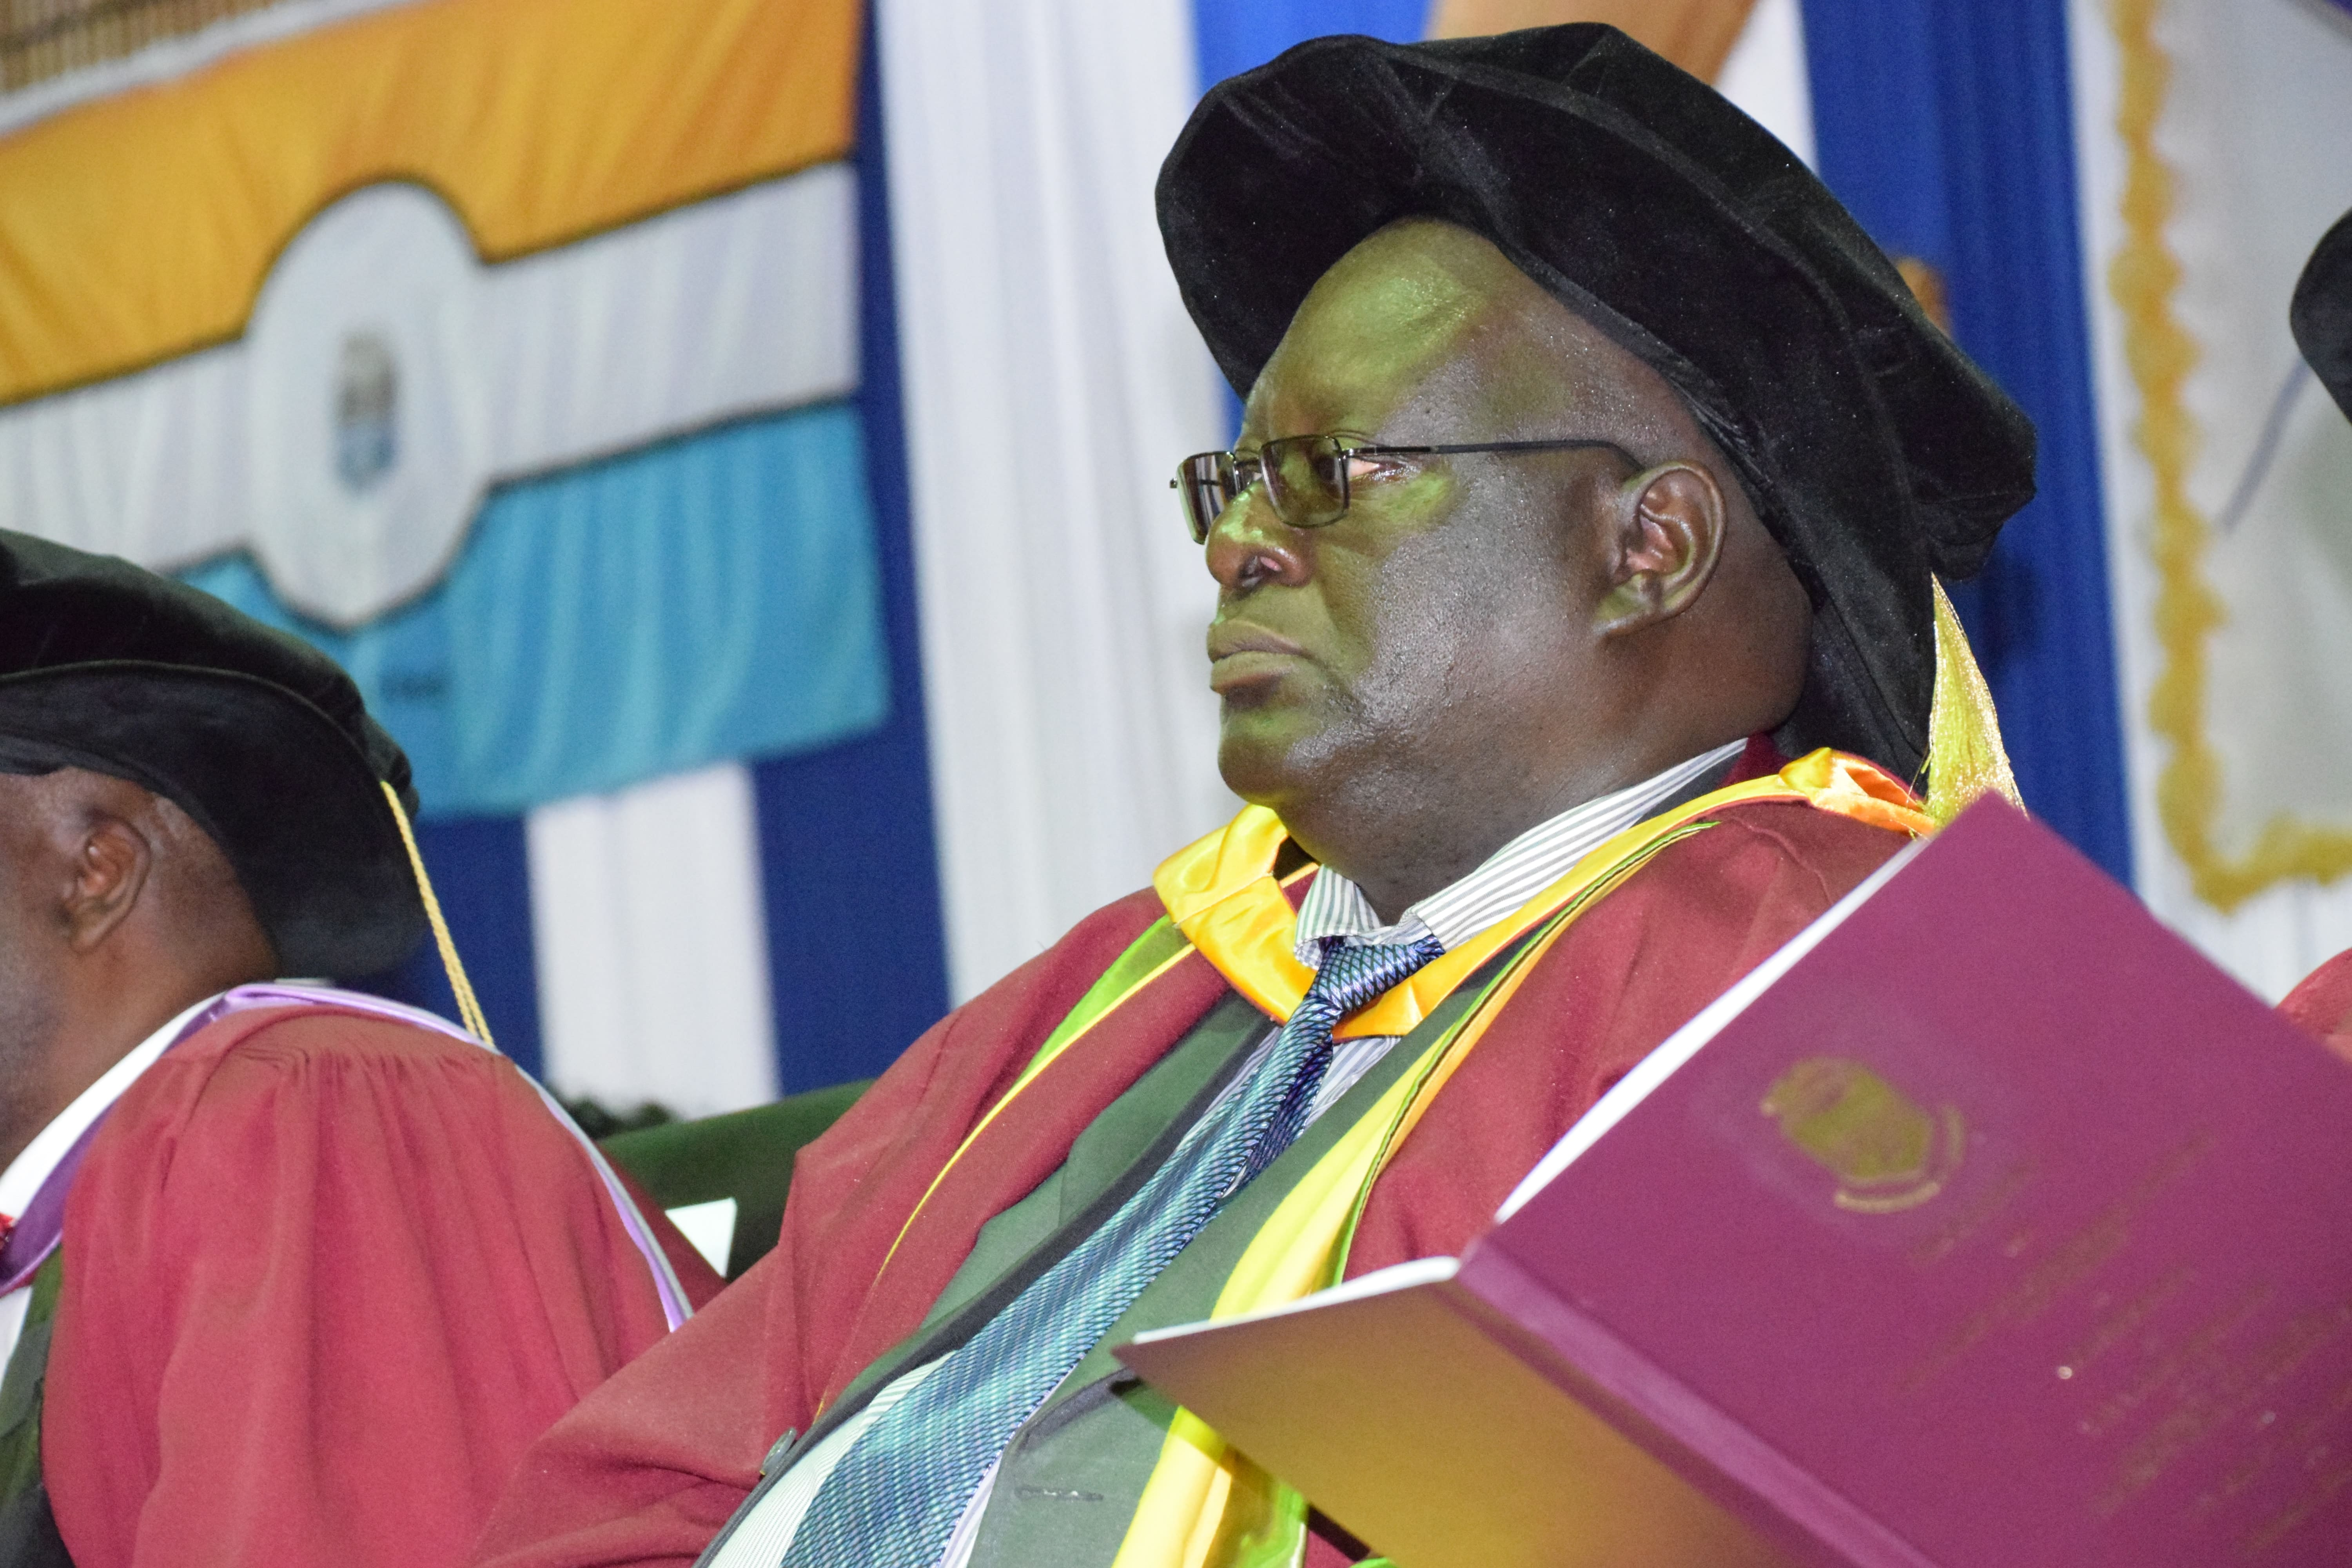 COURT SUSTAINS UNIMA'S INJUNCTION AGAINST UWTU